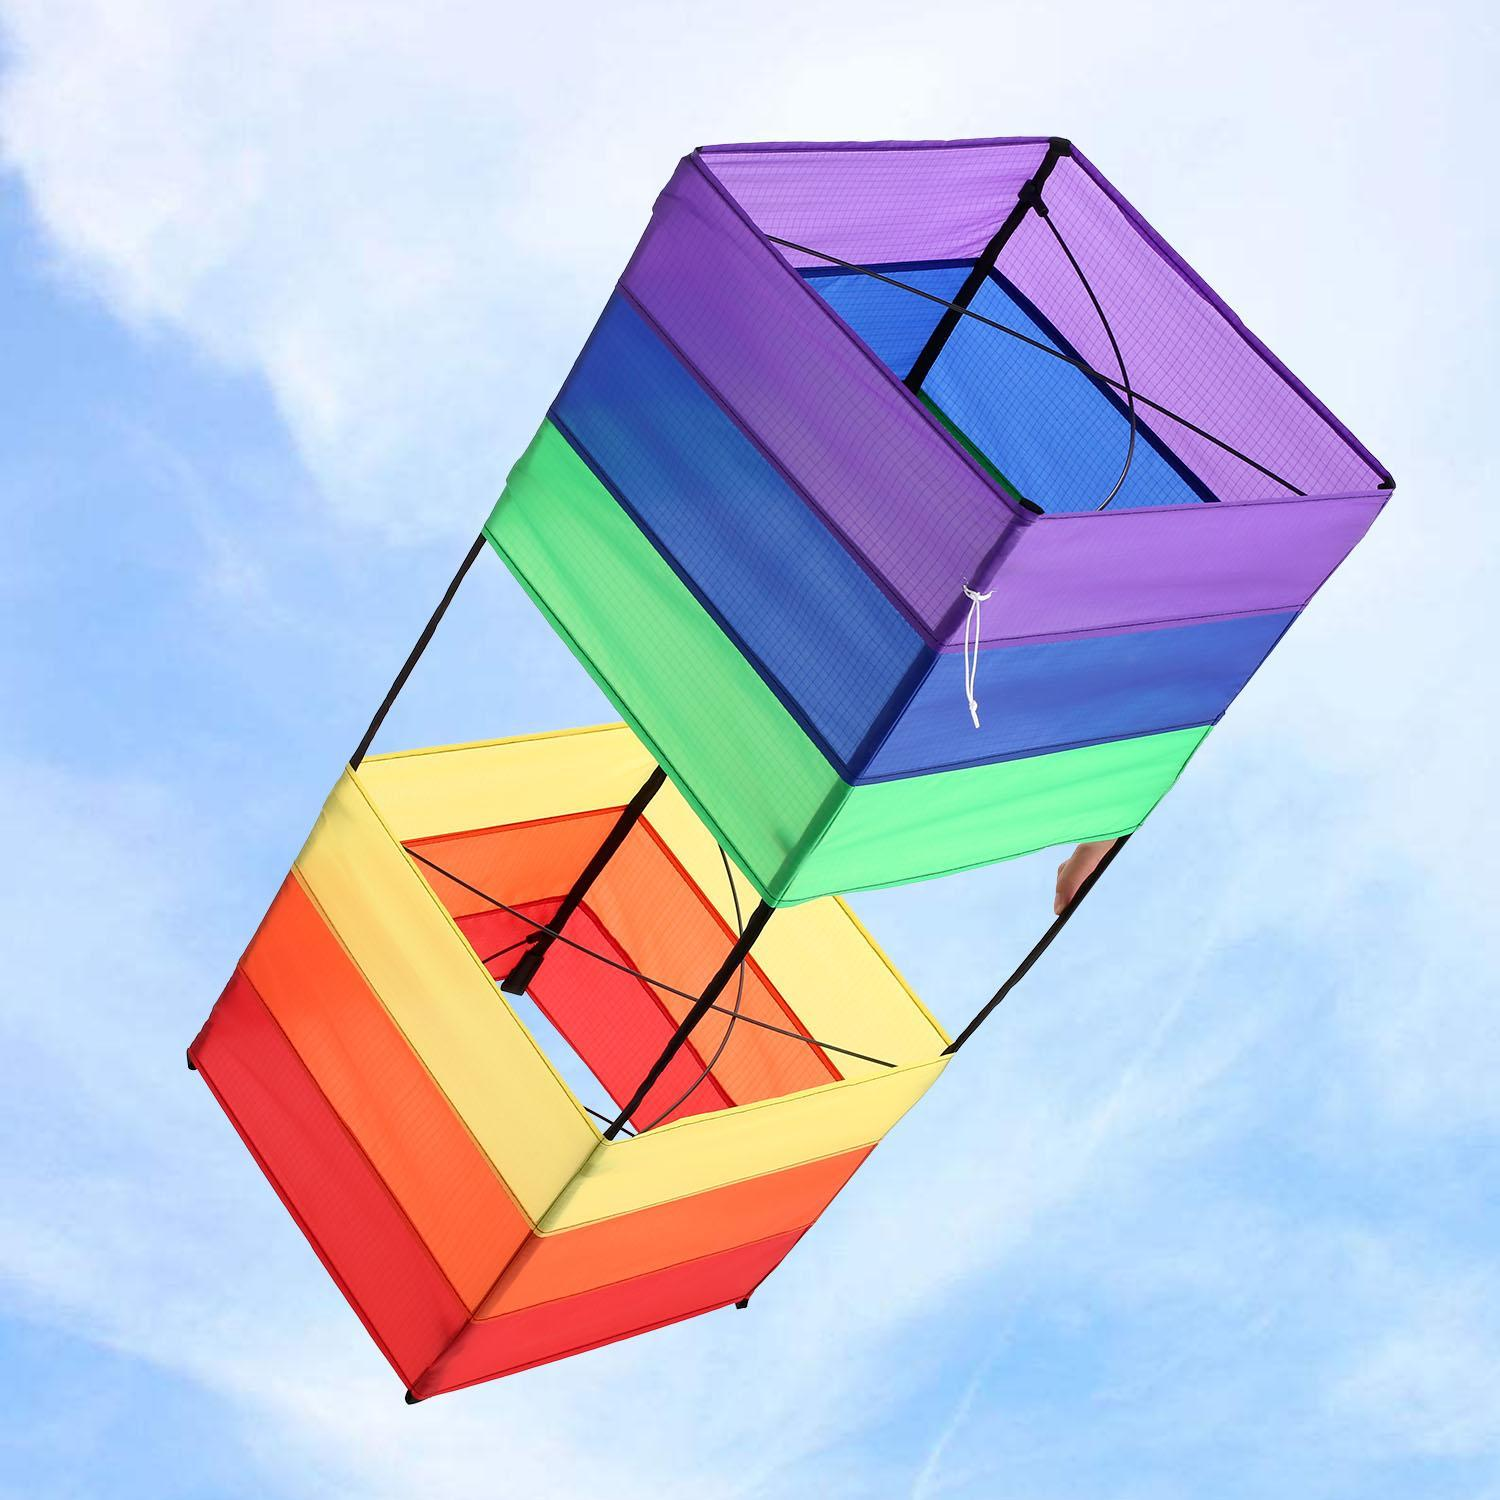 Rainbows Rectangle Box Kite for Kids and Adults Outdoor Games by Generic